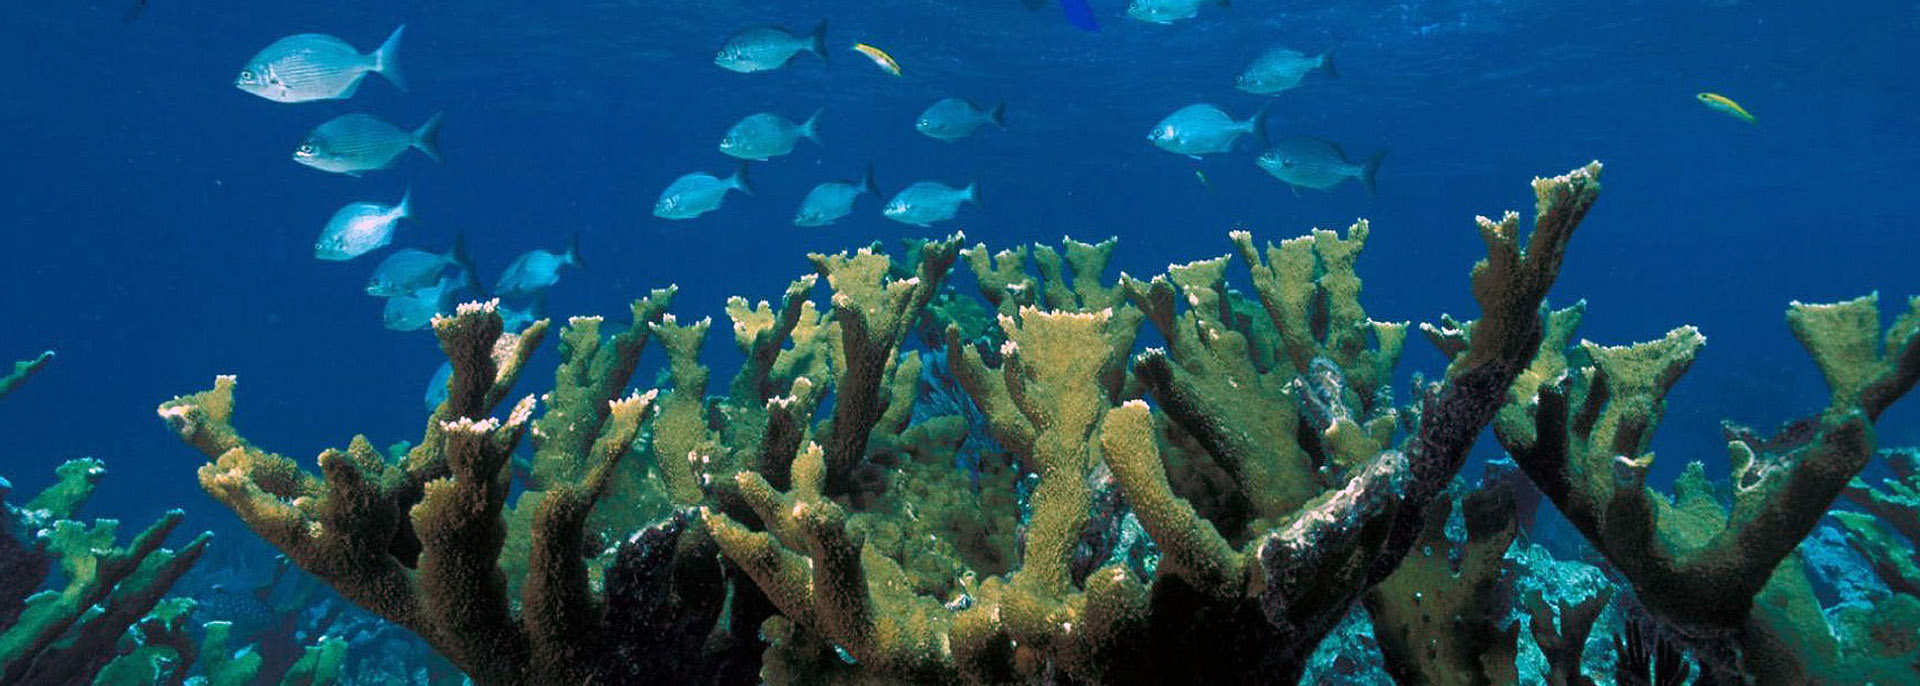 Fish of the oceans: a selection of sites